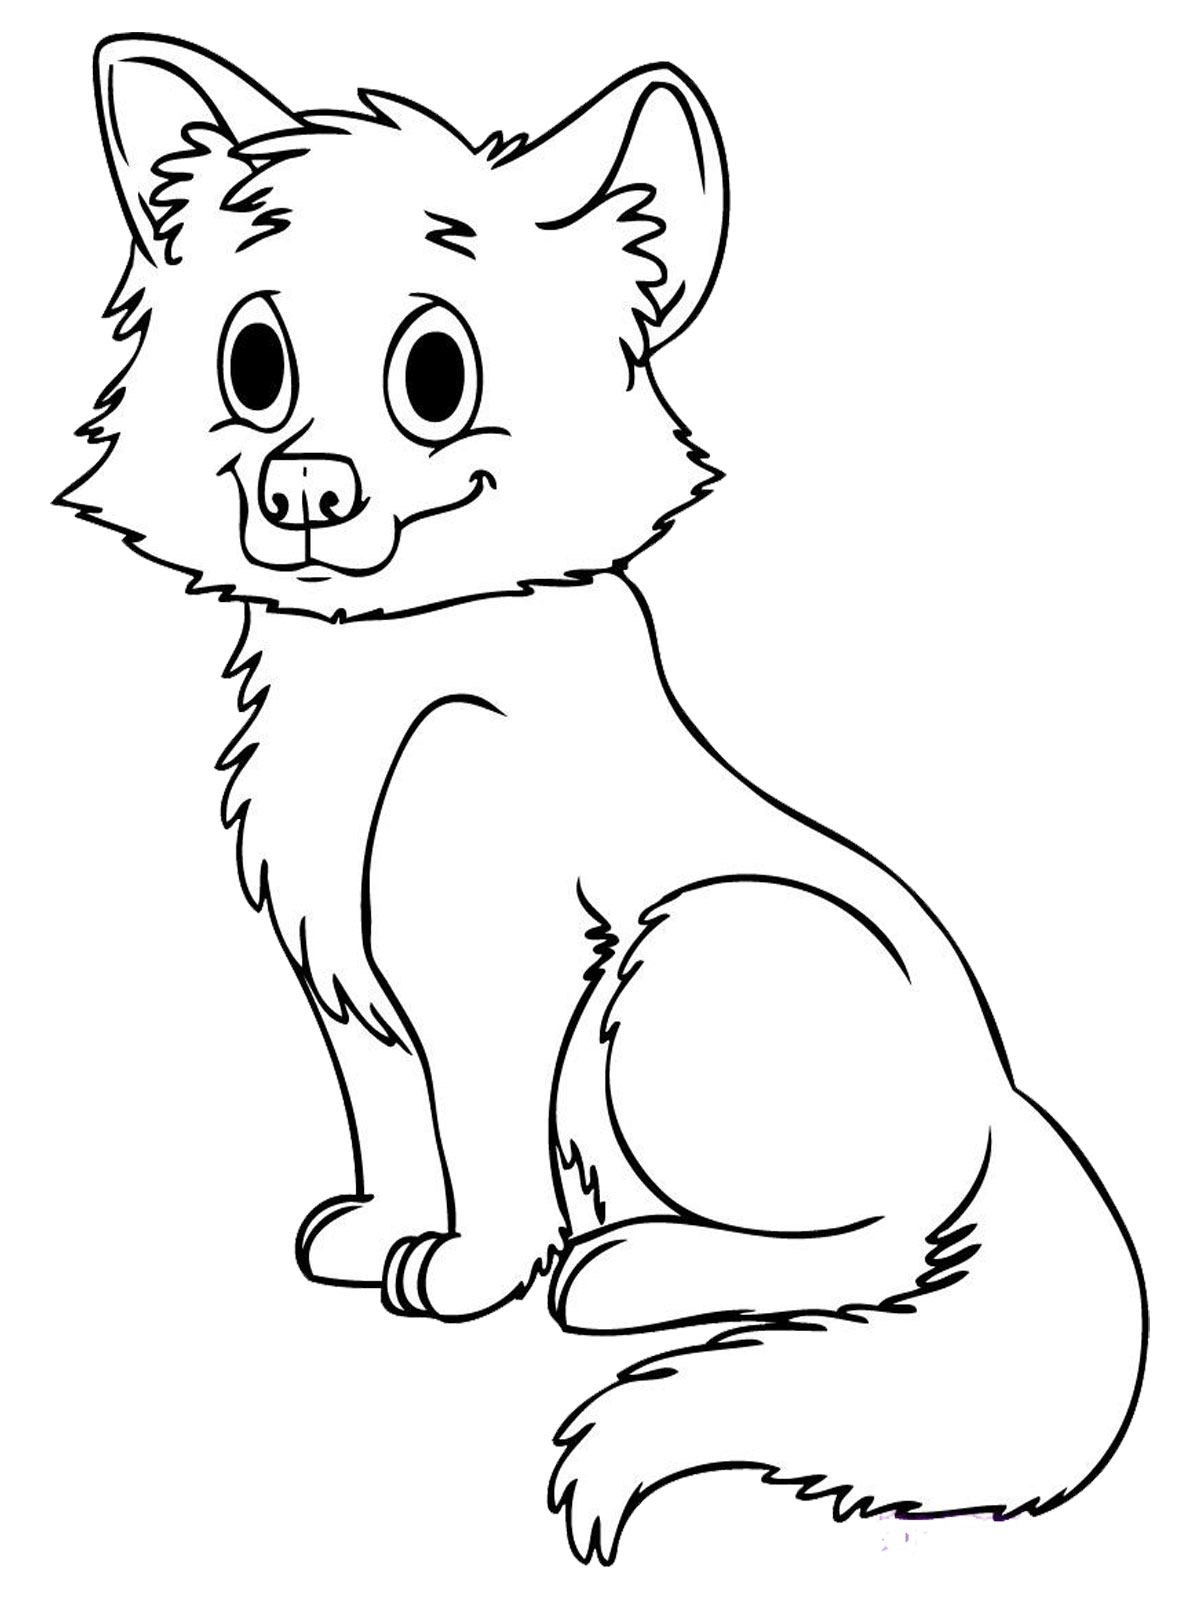 coloring pages baby animals - photo#5